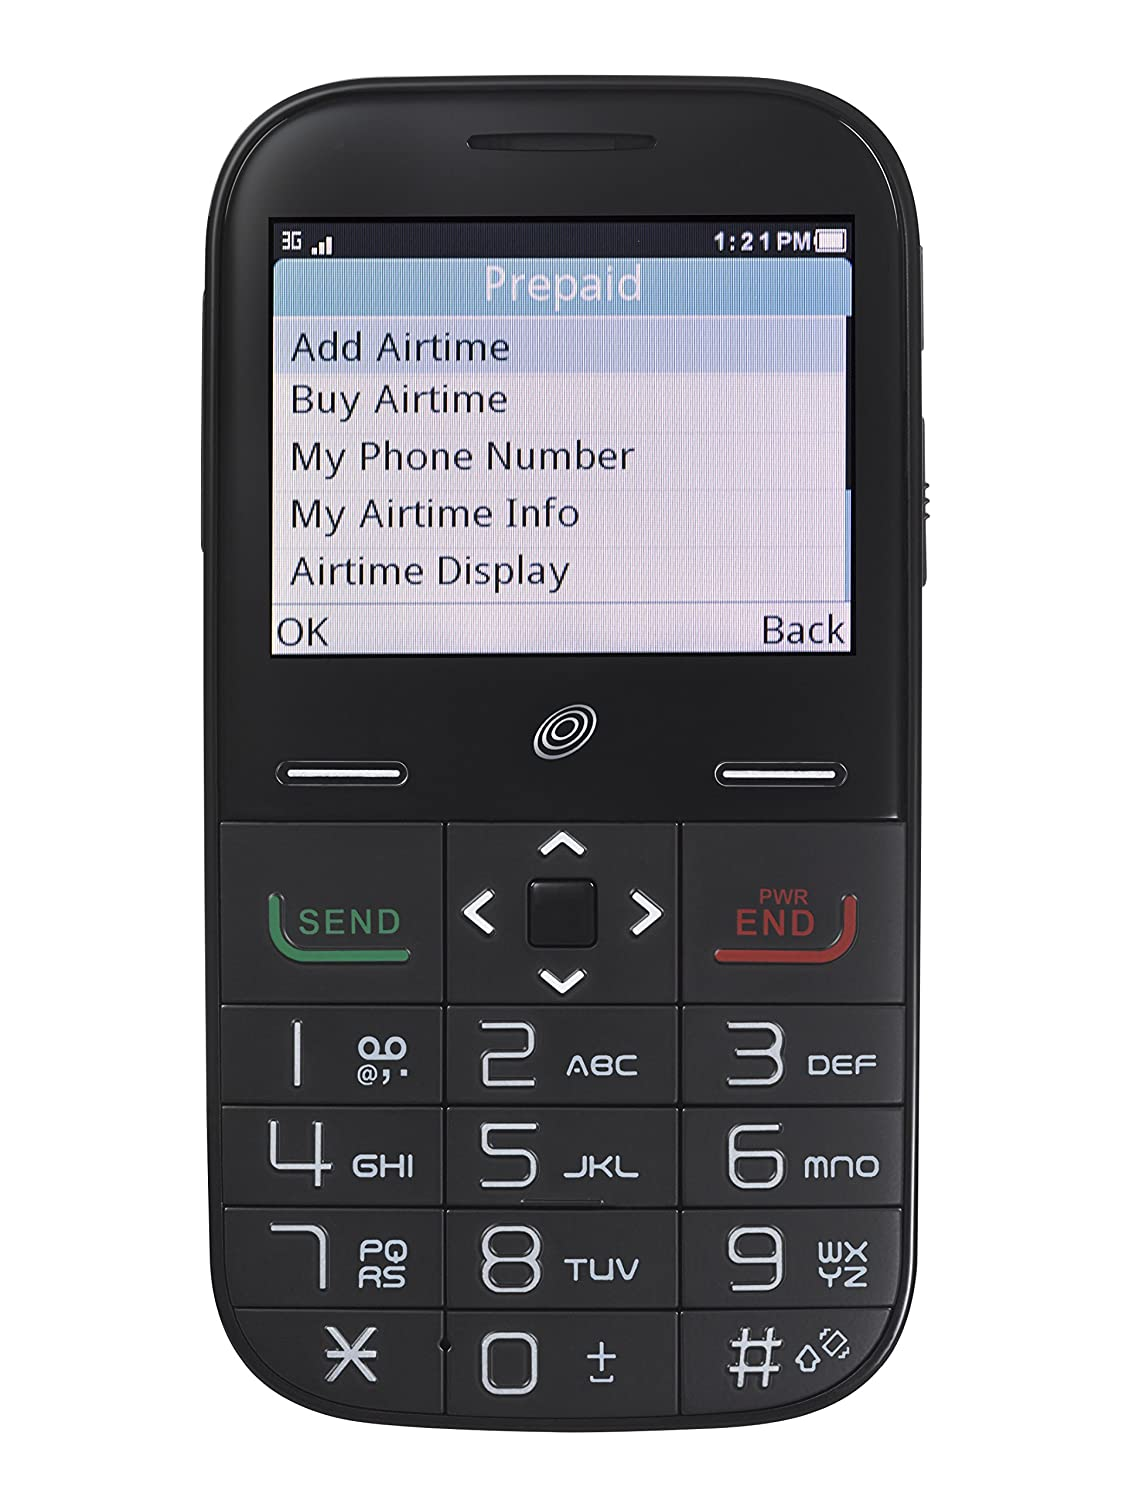 Amazon prime membership phone number - Amazon Com Alcatel Big Easy Plus Prepaid Phone With Double Minutes Tracfone Cell Phones Accessories